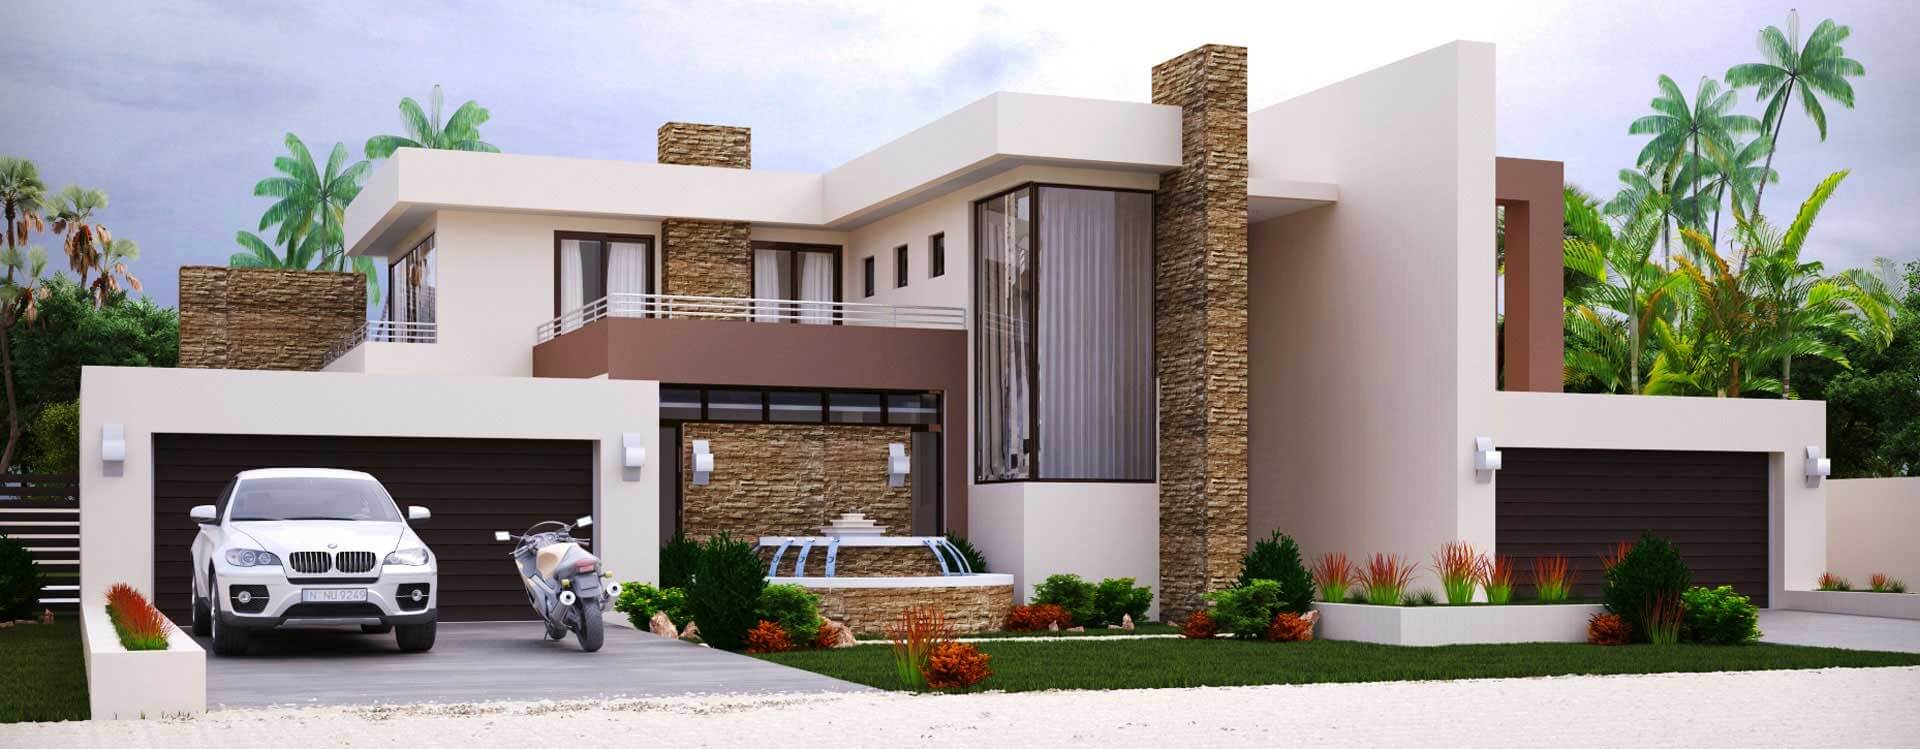 Modern Style House Plan 4 Bedroom Double Storey Floor Plans Home Design. Design Plans For Houses  Smartness Ideas Plans For Houses Plain